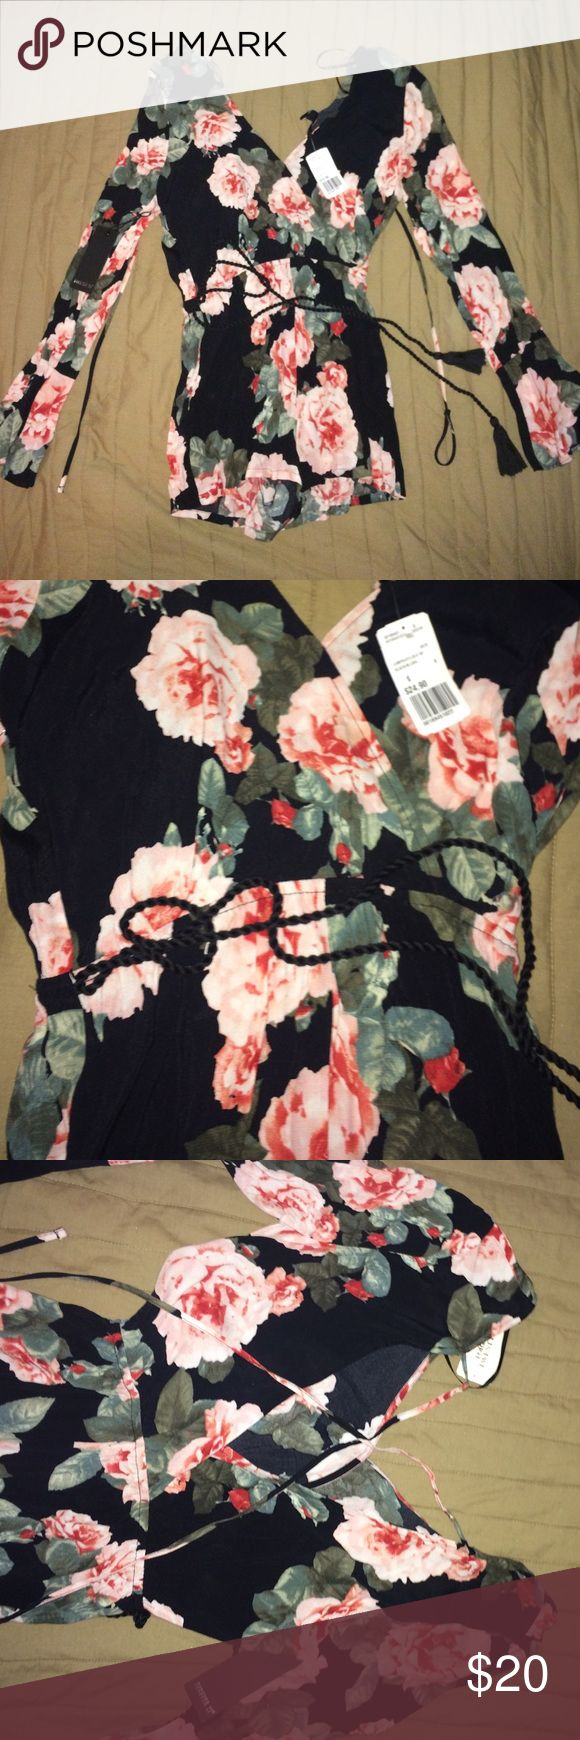 NWT F21 Floral Jumper 🎀❤ NWT F21 floral jumper with rope tie on the waist and cross back. Beautiful but too small for me, received as a gift. Fits like a boho top and short shorts. A great summer piece to show off 🎀❤🎉 Forever 21 Other